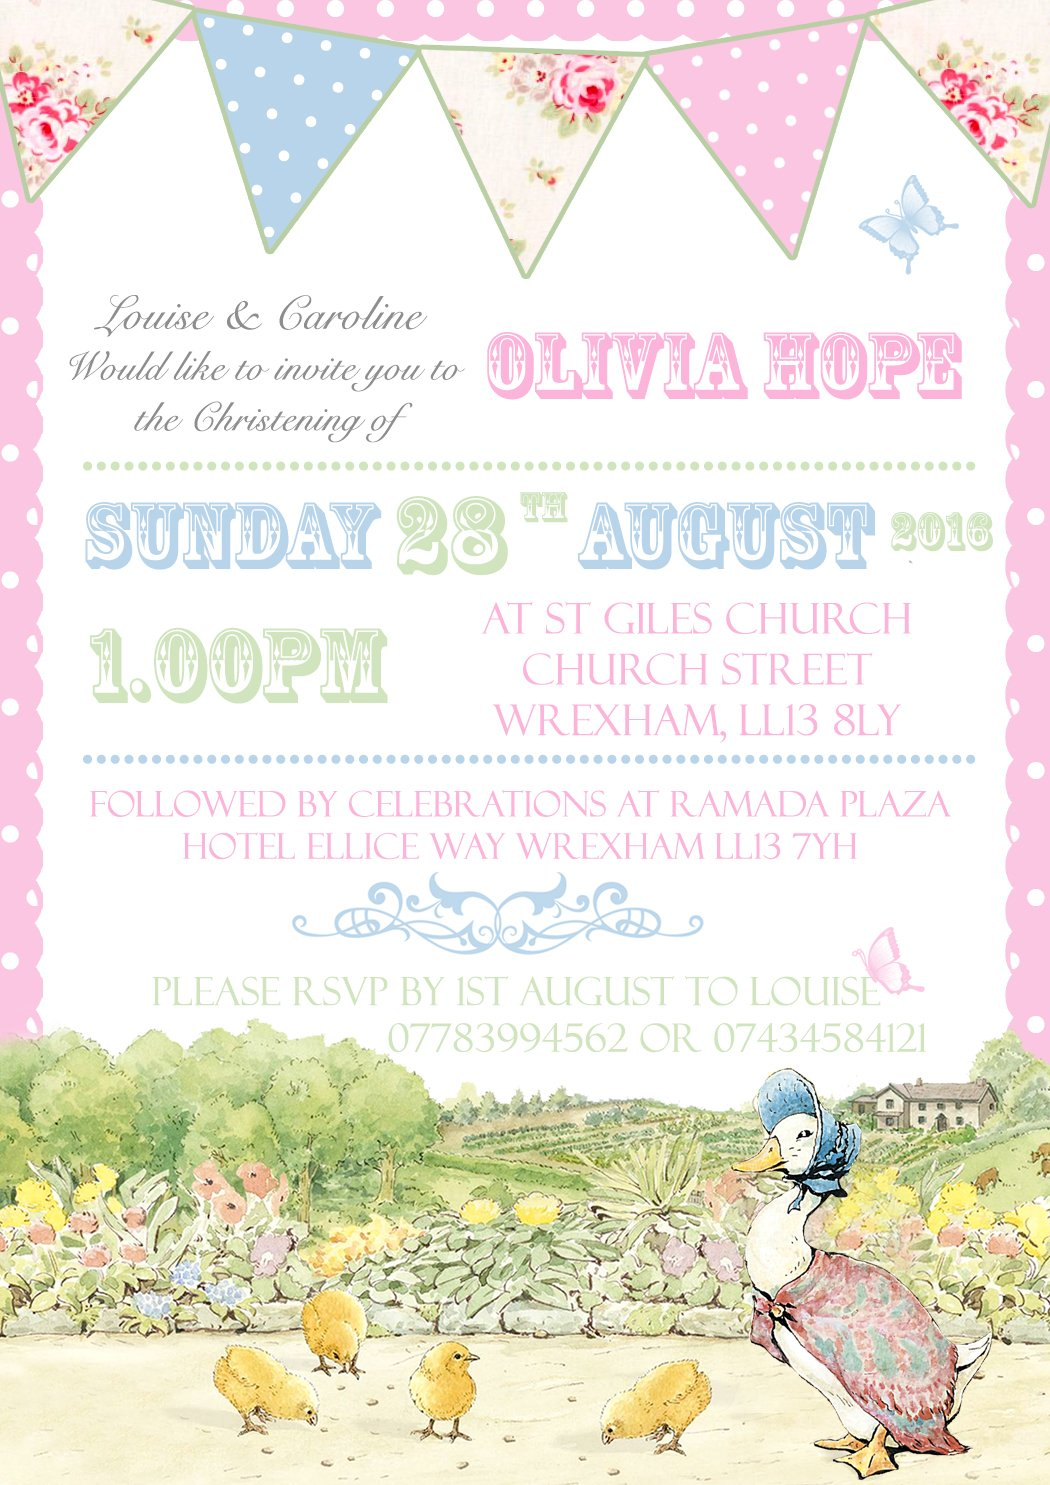 Peter Rabbit Shabby Chic Personalised Christening Naming Ceremony Confirmation Baptism Invitations Printed Invites Boy Girl Joint Party Twins Unisex Photo Card 5 10 20 30 40 50 60 70 80 90 100